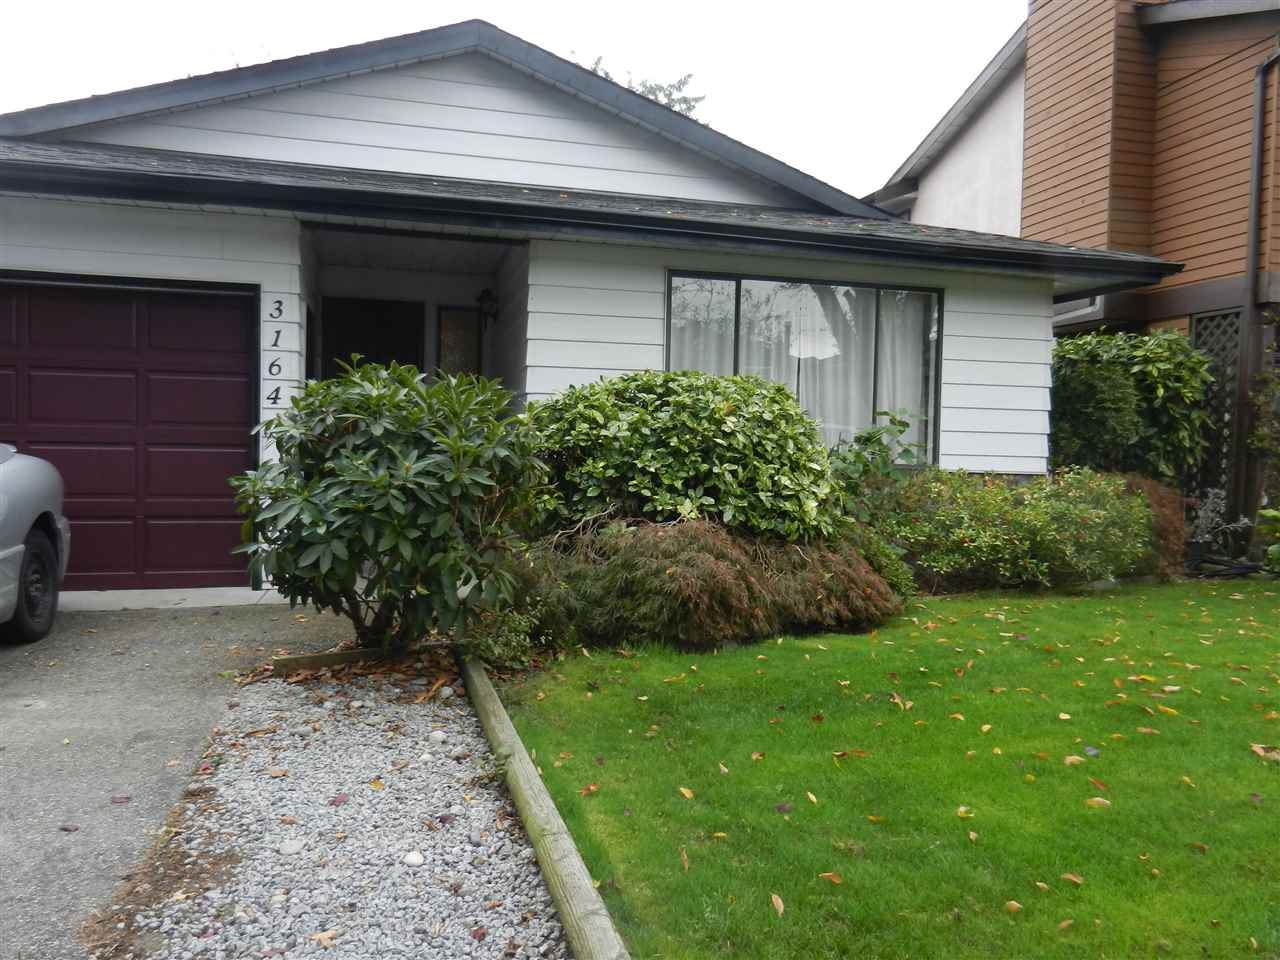 Photo 20: 3164 FREY Place in Port Coquitlam: Glenwood PQ House for sale : MLS® # R2113902